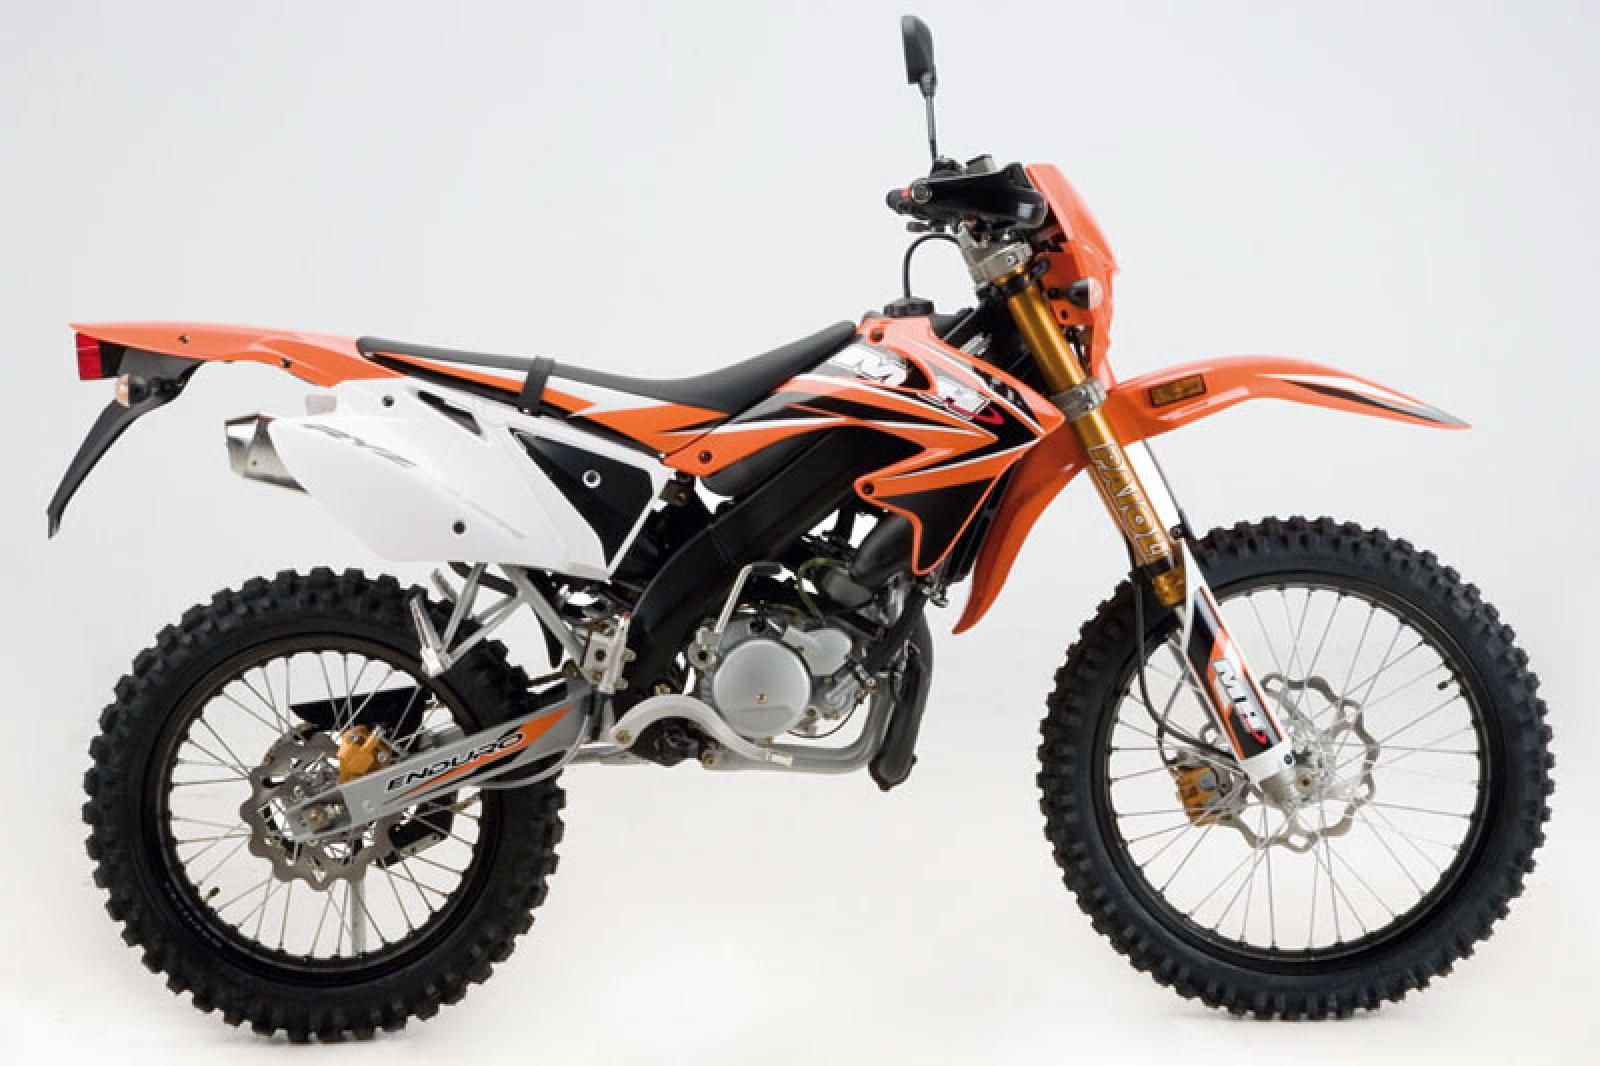 Motorhispania RYZ 49 Supermotard images #112561